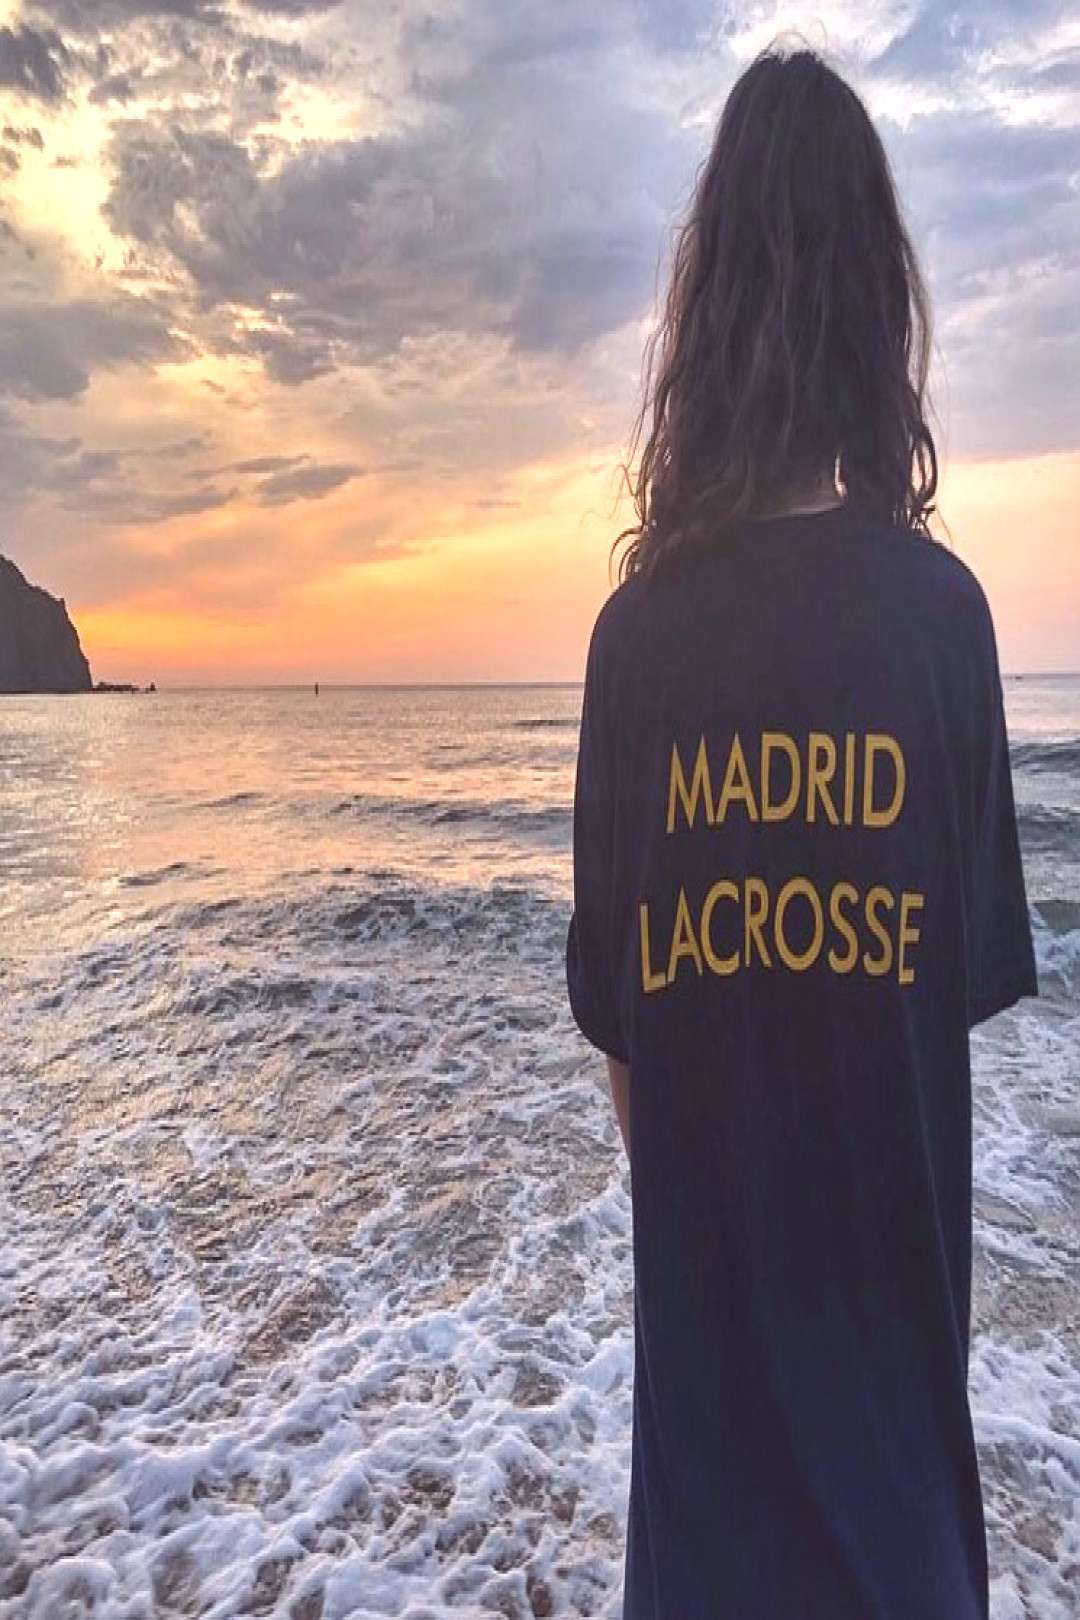 Madrid Lacrosse on April 22 2020 one or more people people standi